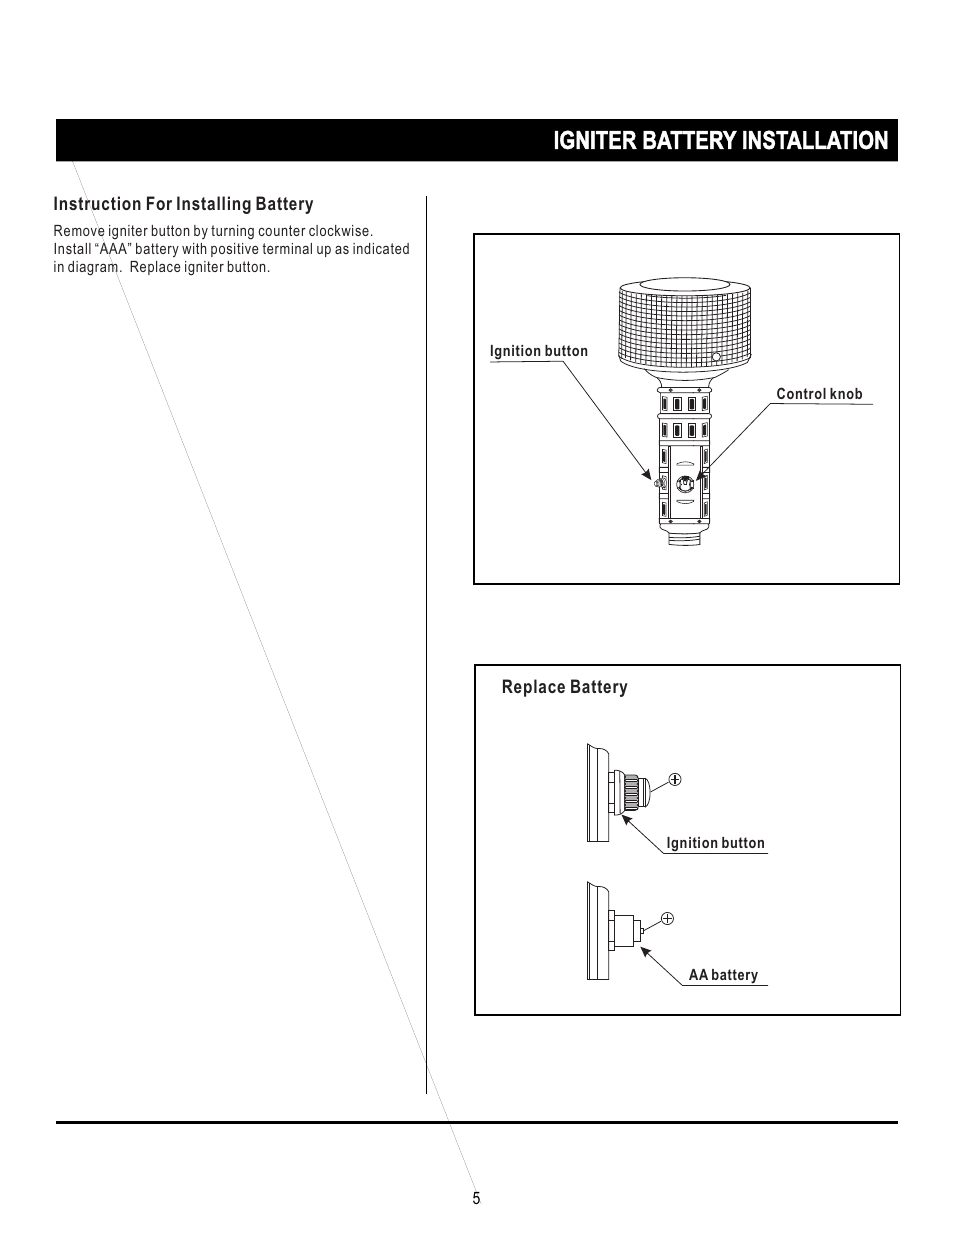 hight resolution of igniter battery installation napoleon grills propane patio heater srph01 user manual page 5 14